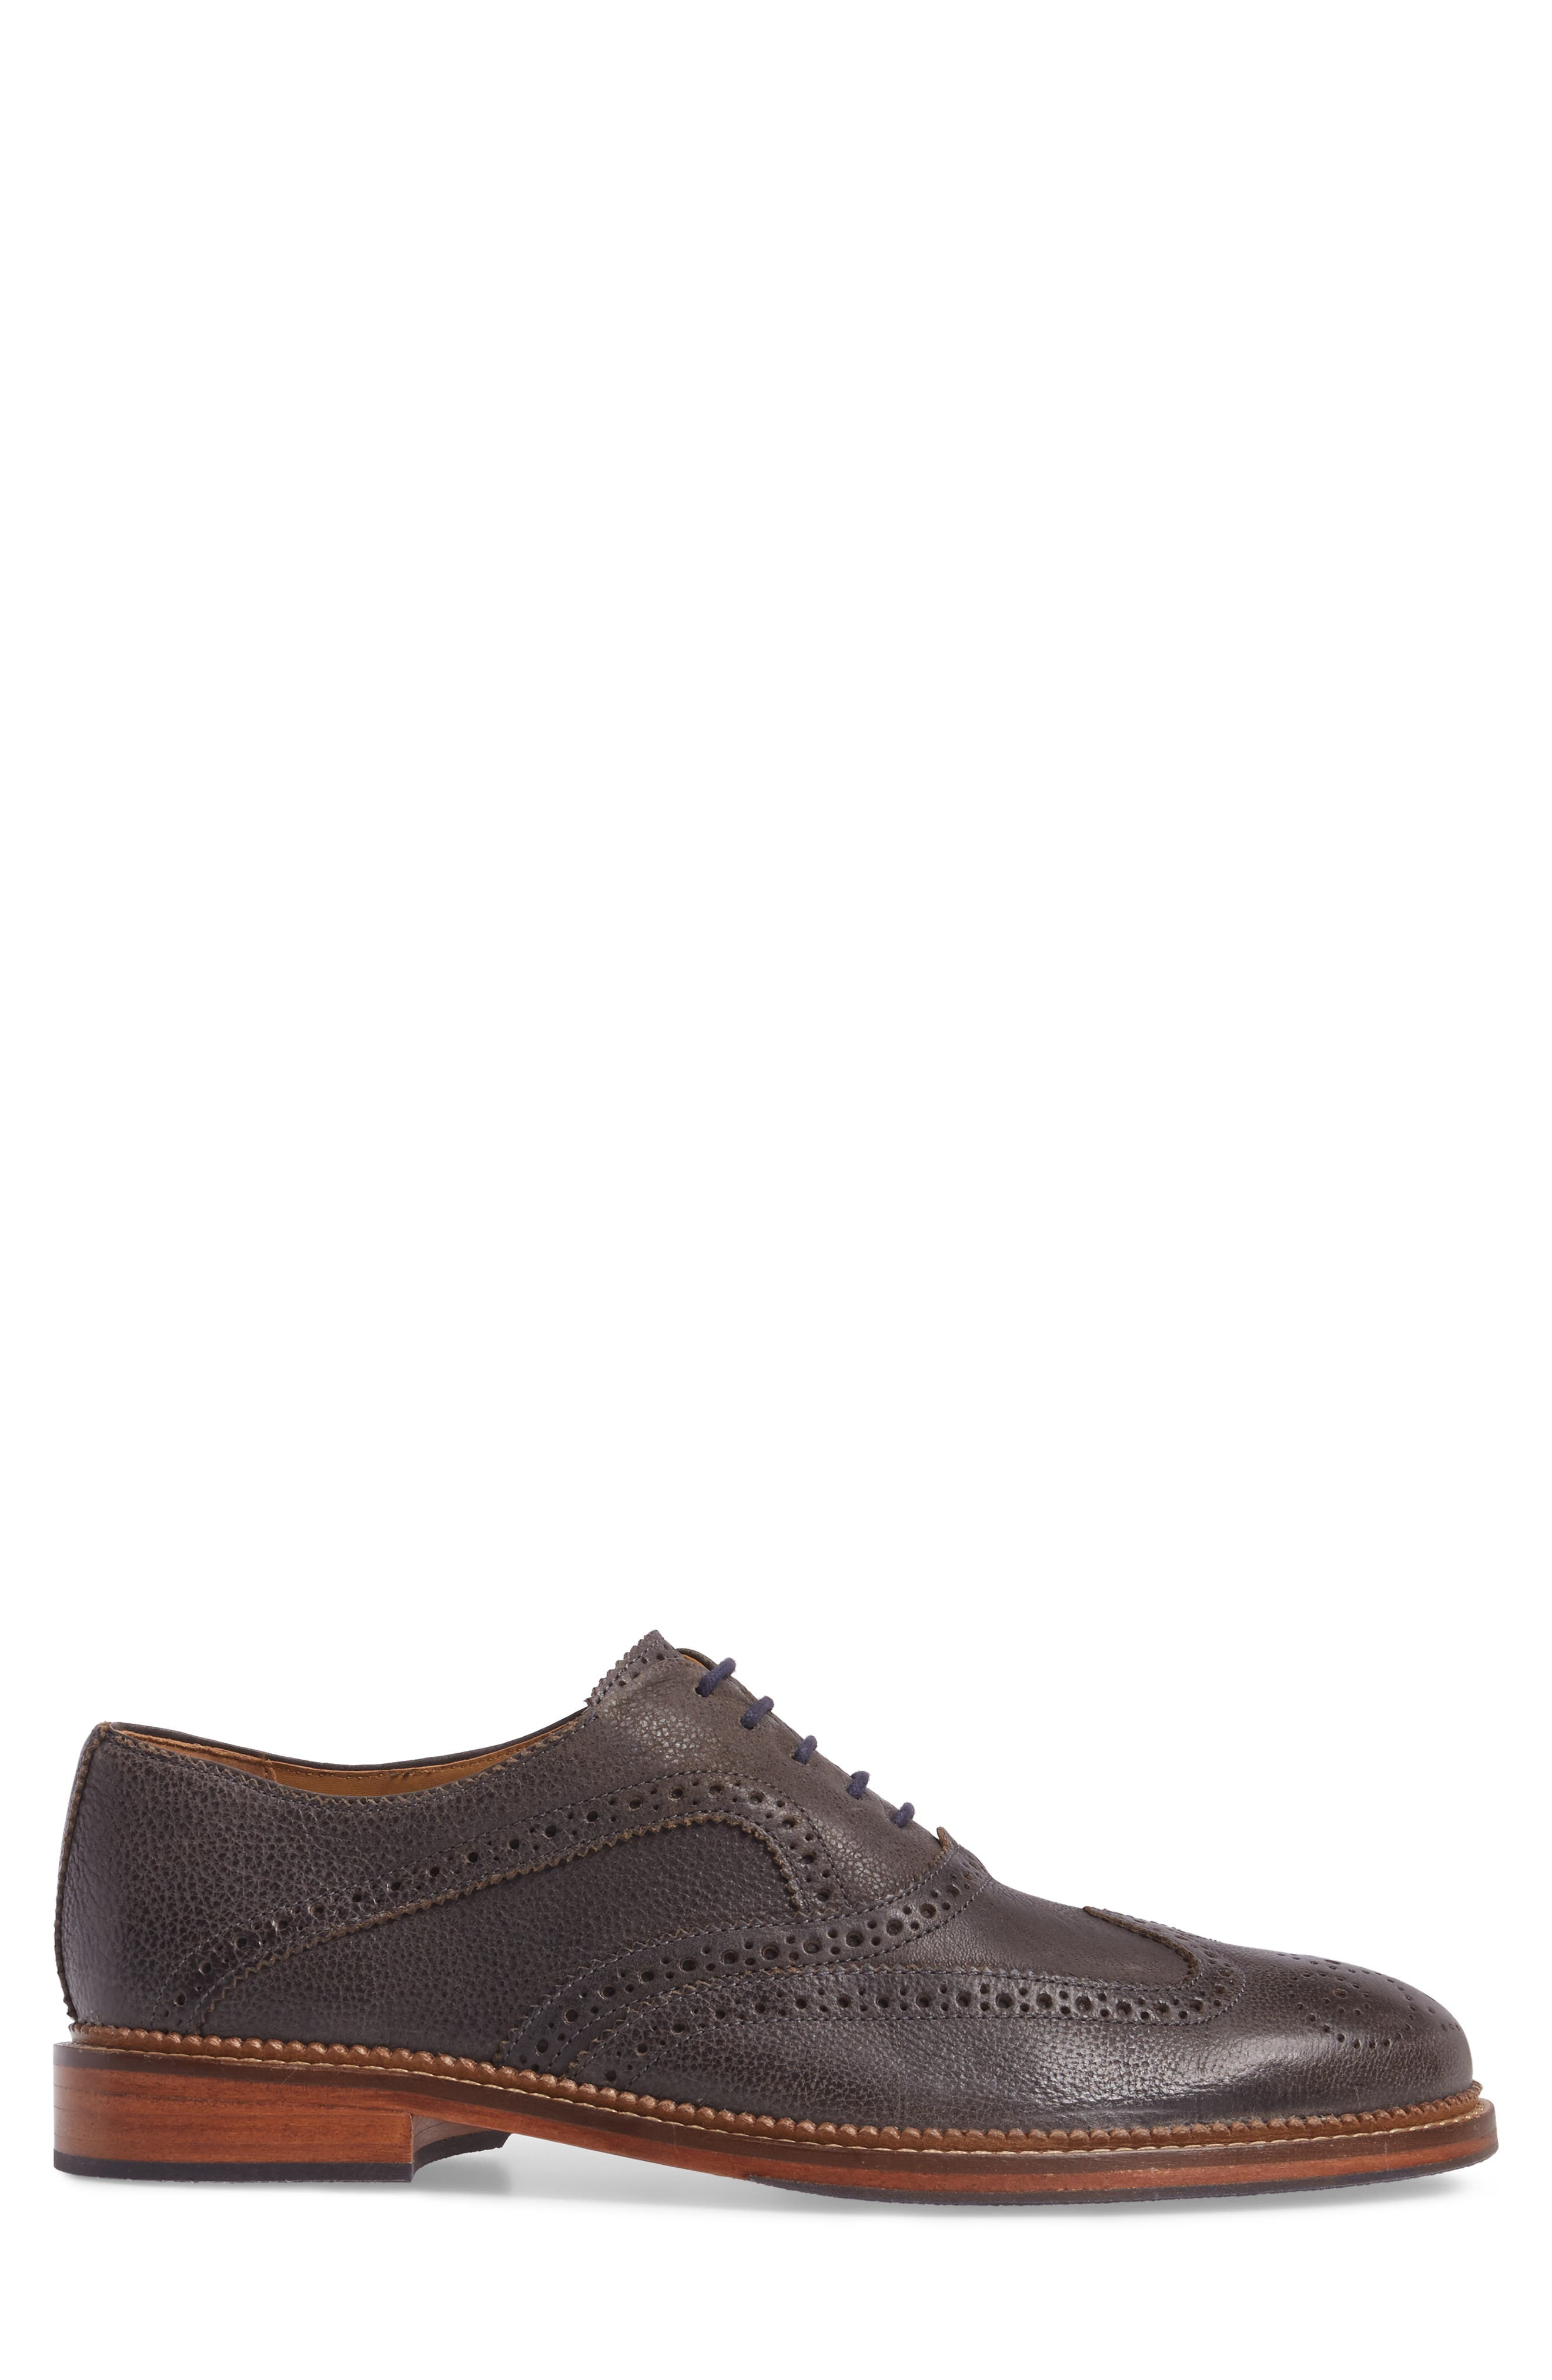 Alternate Image 3  - J SHOES Spencer Wingtip (Men)